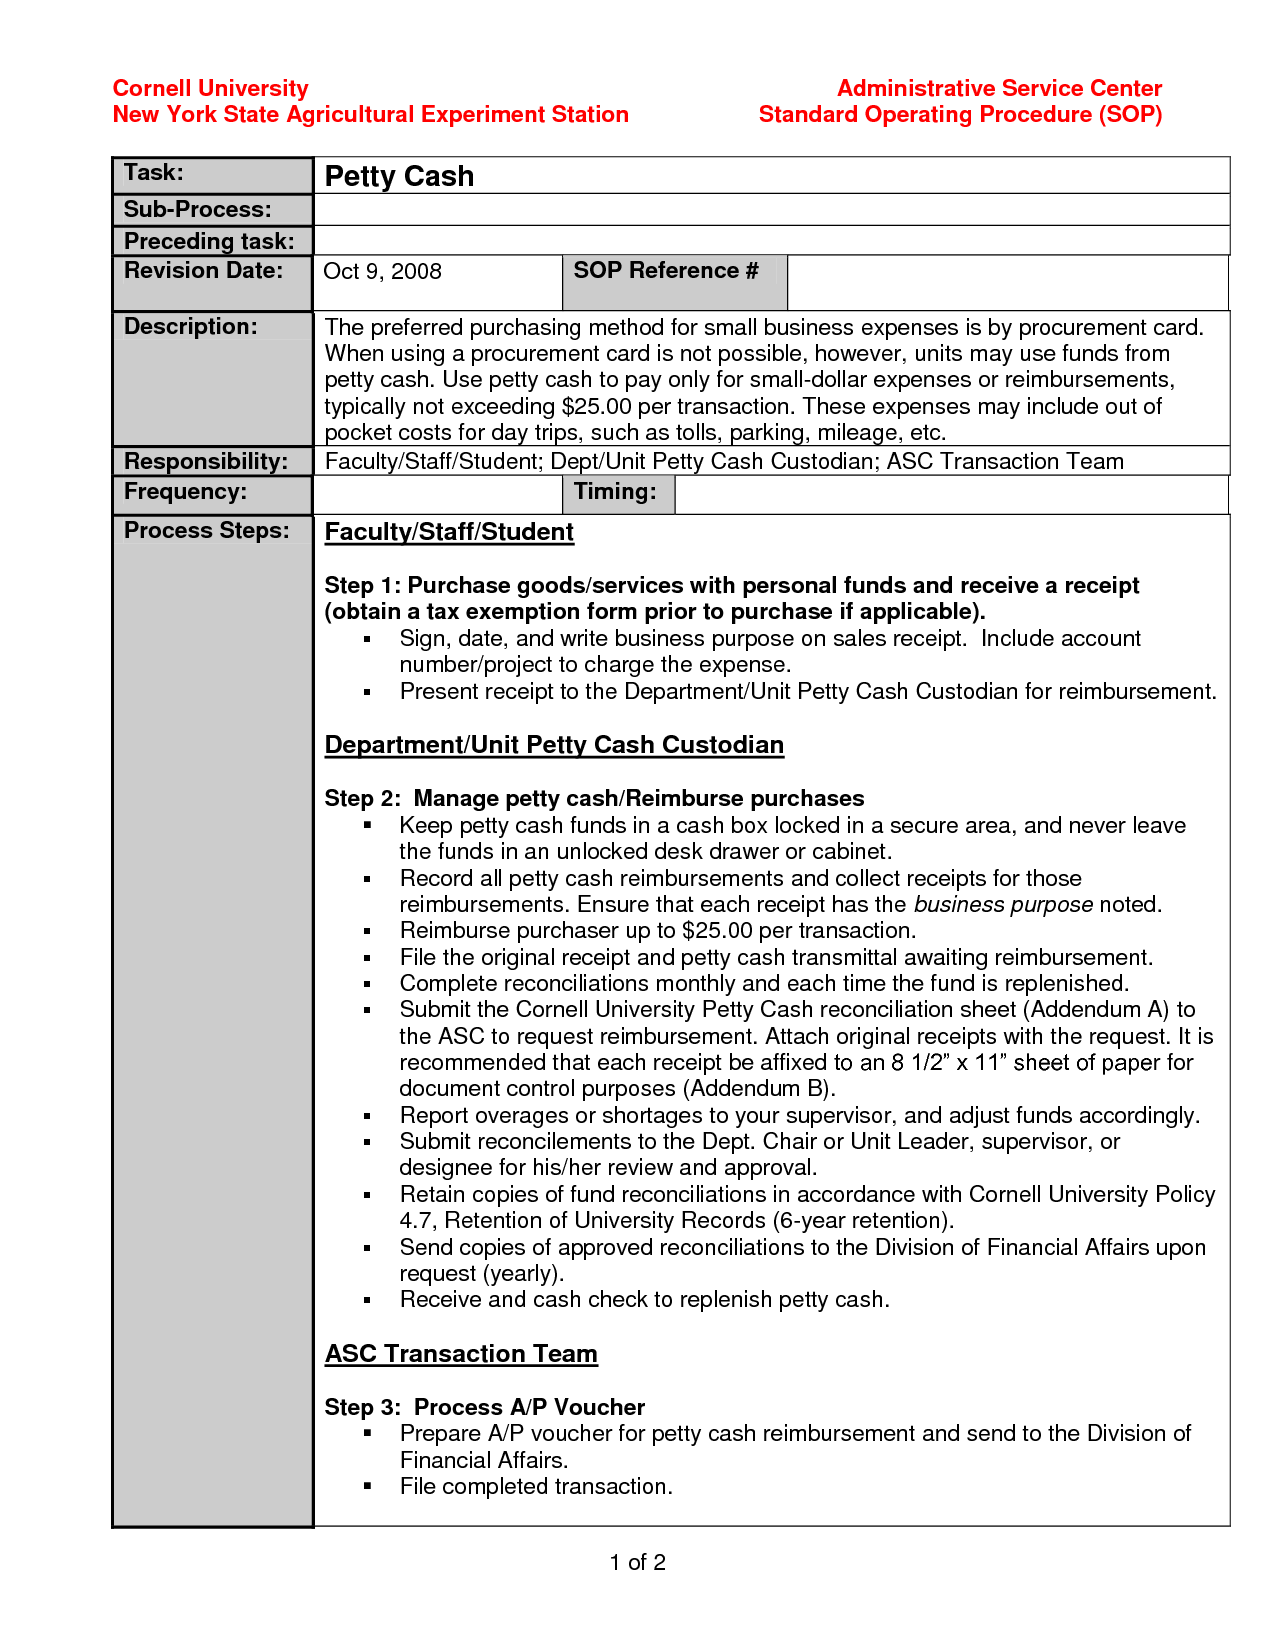 Standard Operating Procedure Template Example EVq8bwf6